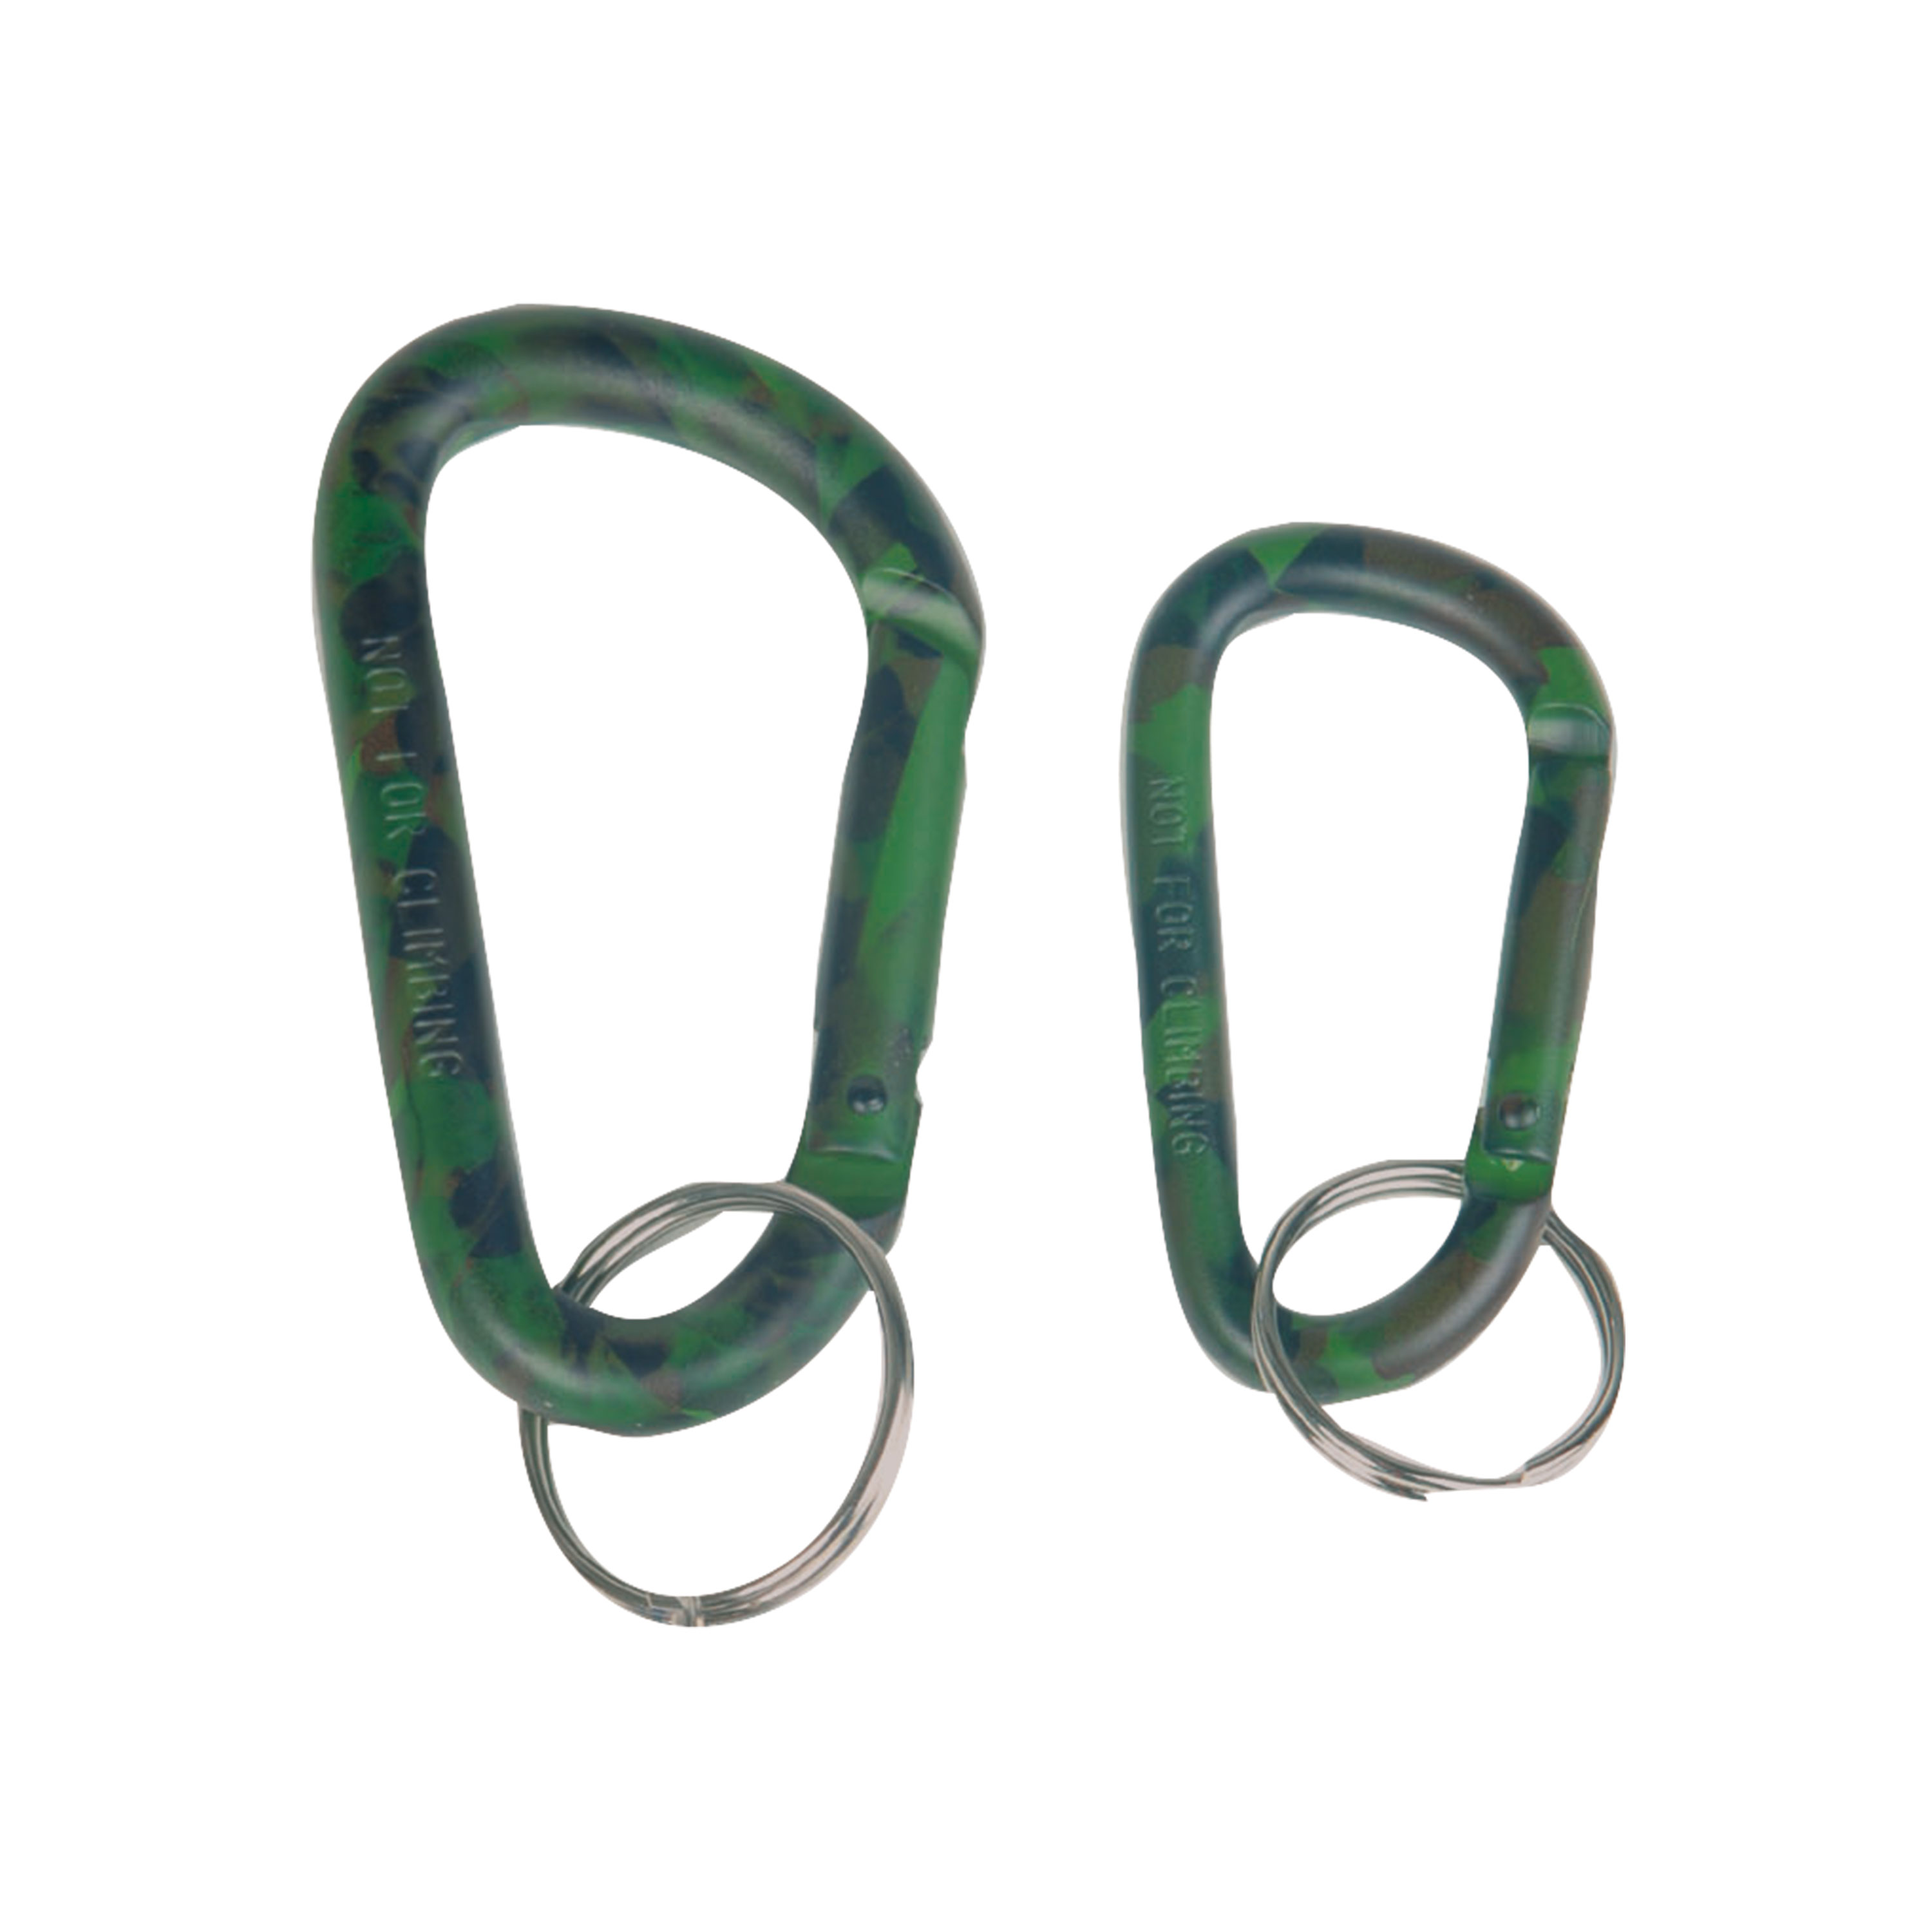 Tactical Carabiner, woodland 6 cm